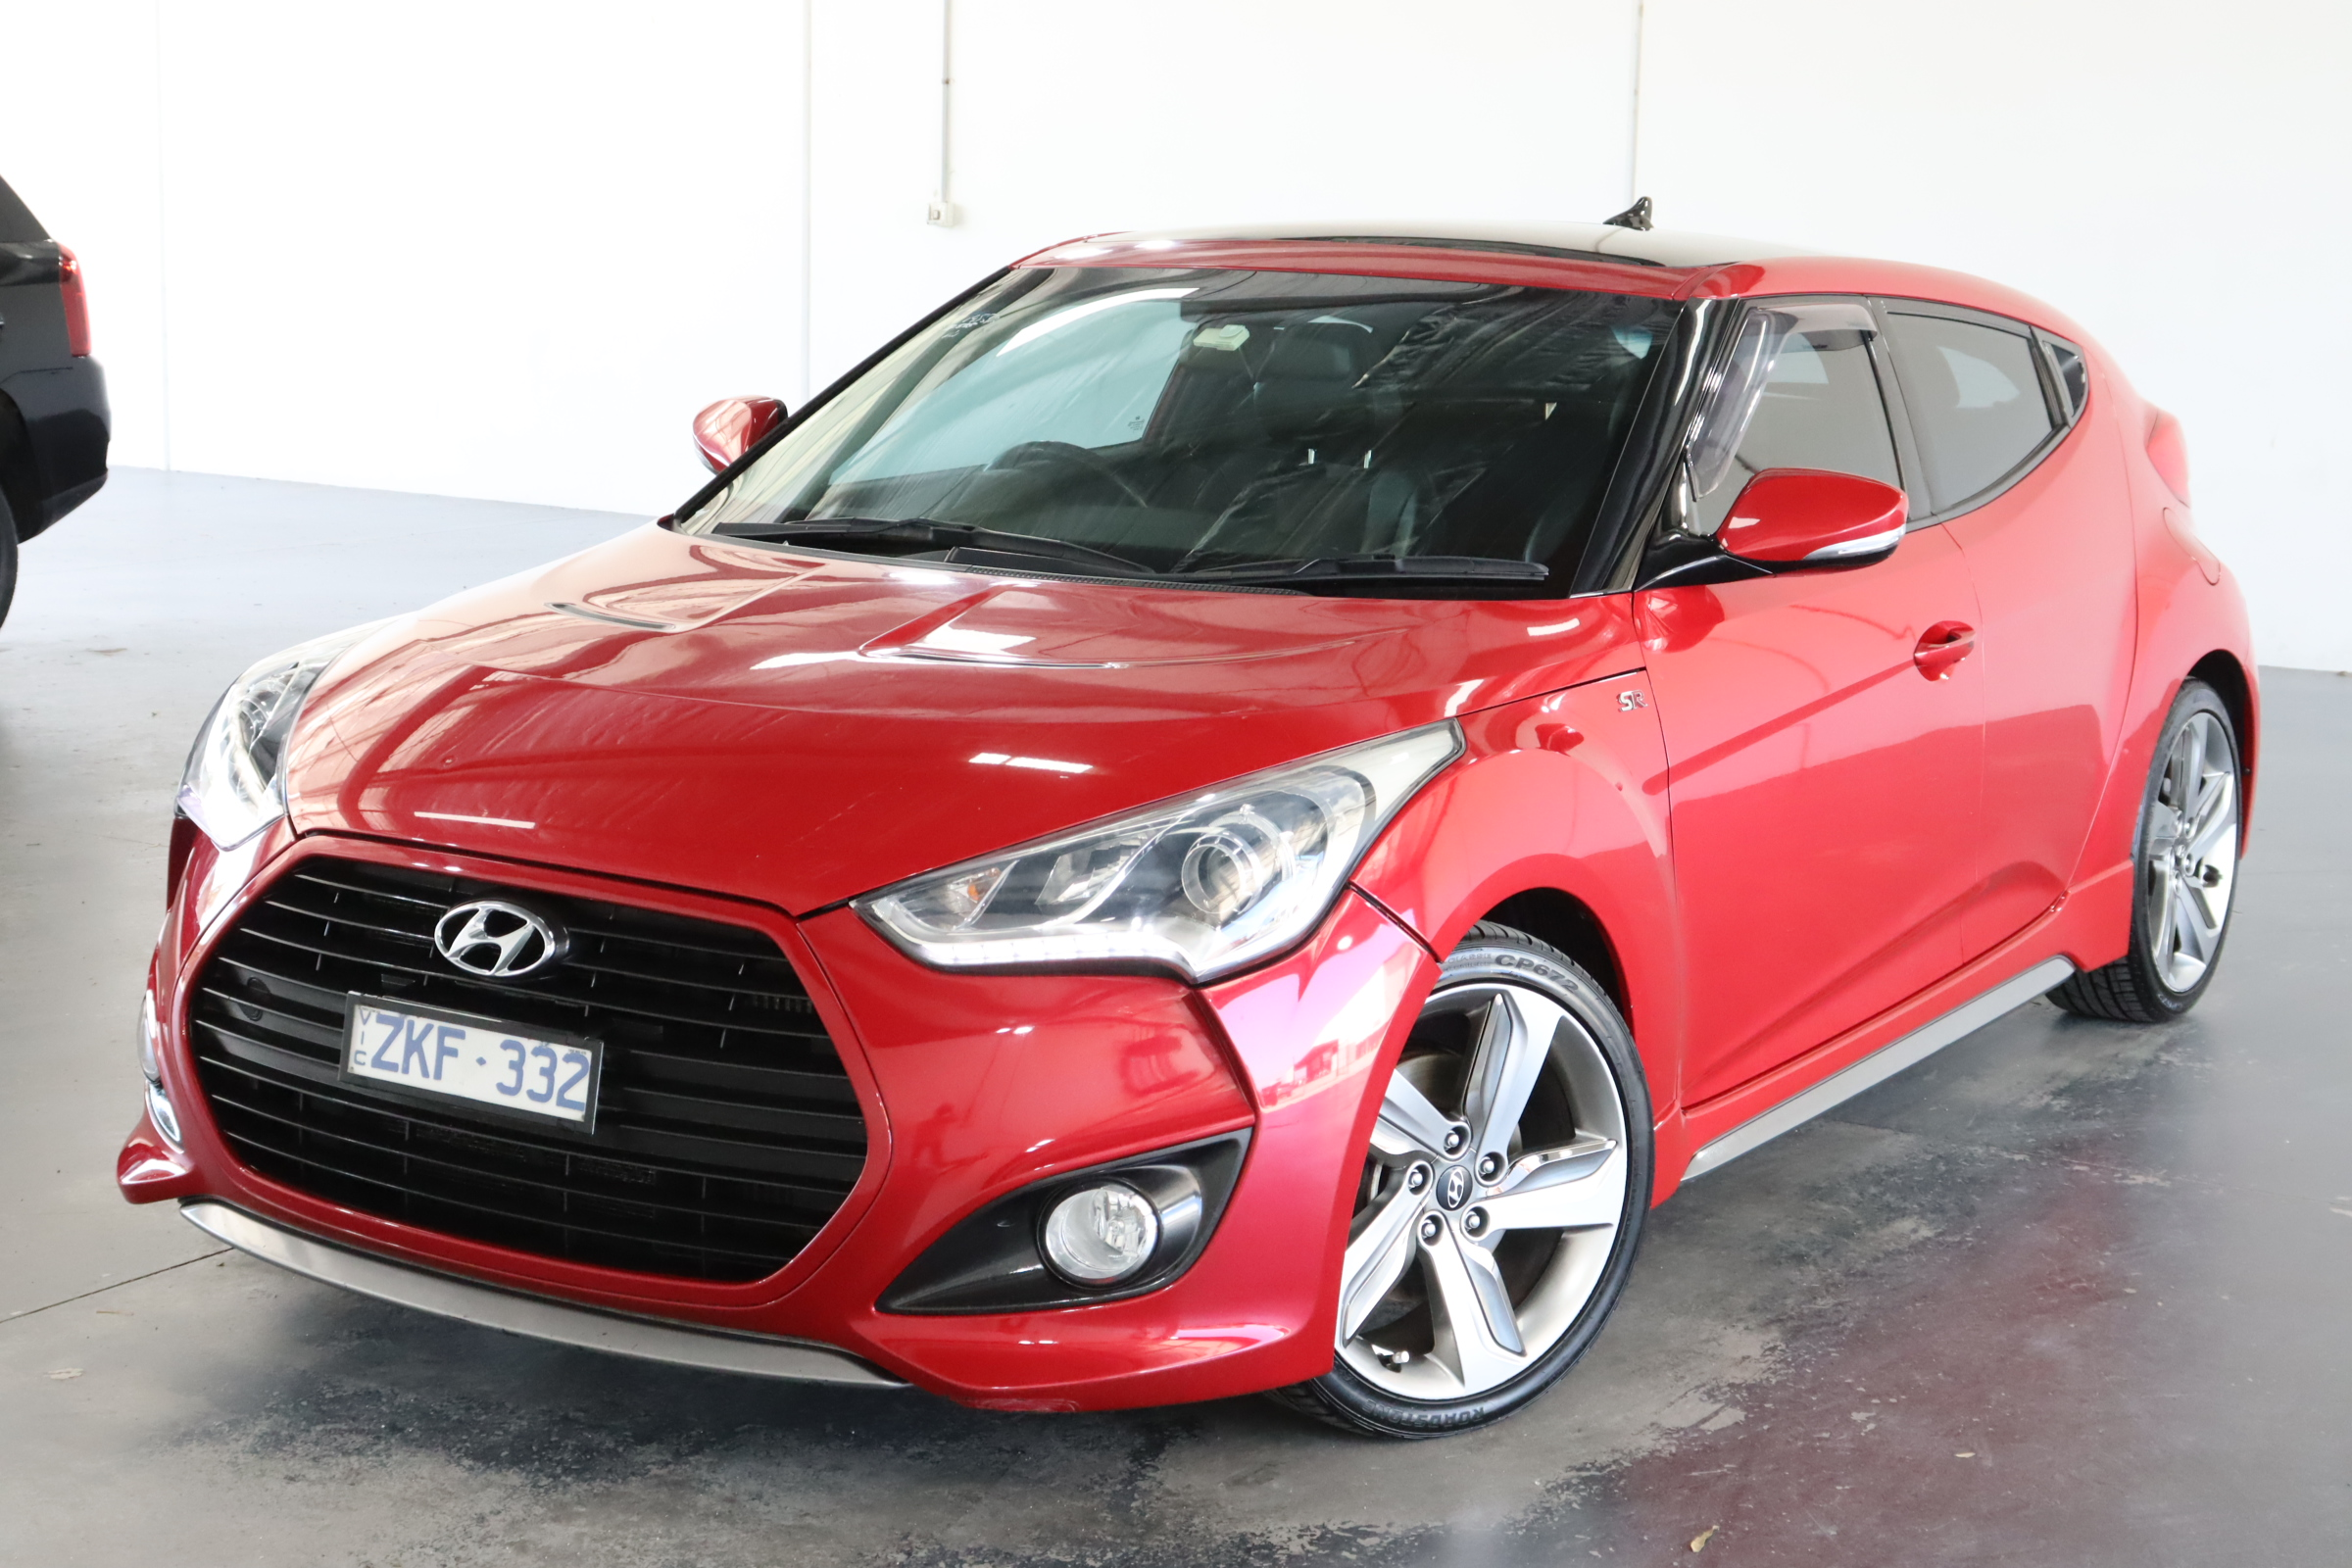 2013 Hyundai Veloster SR TURBO FS Automatic Coupe